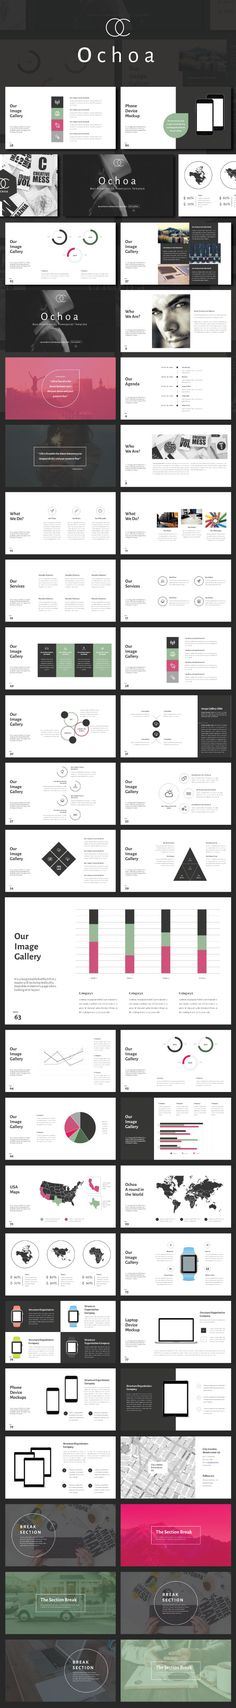 Ochoa Minimal Powerpoint Template • Download ➝ https://graphicriver.net/item/ochoa-minimal-presentation-template/17103320?ref=pxcr